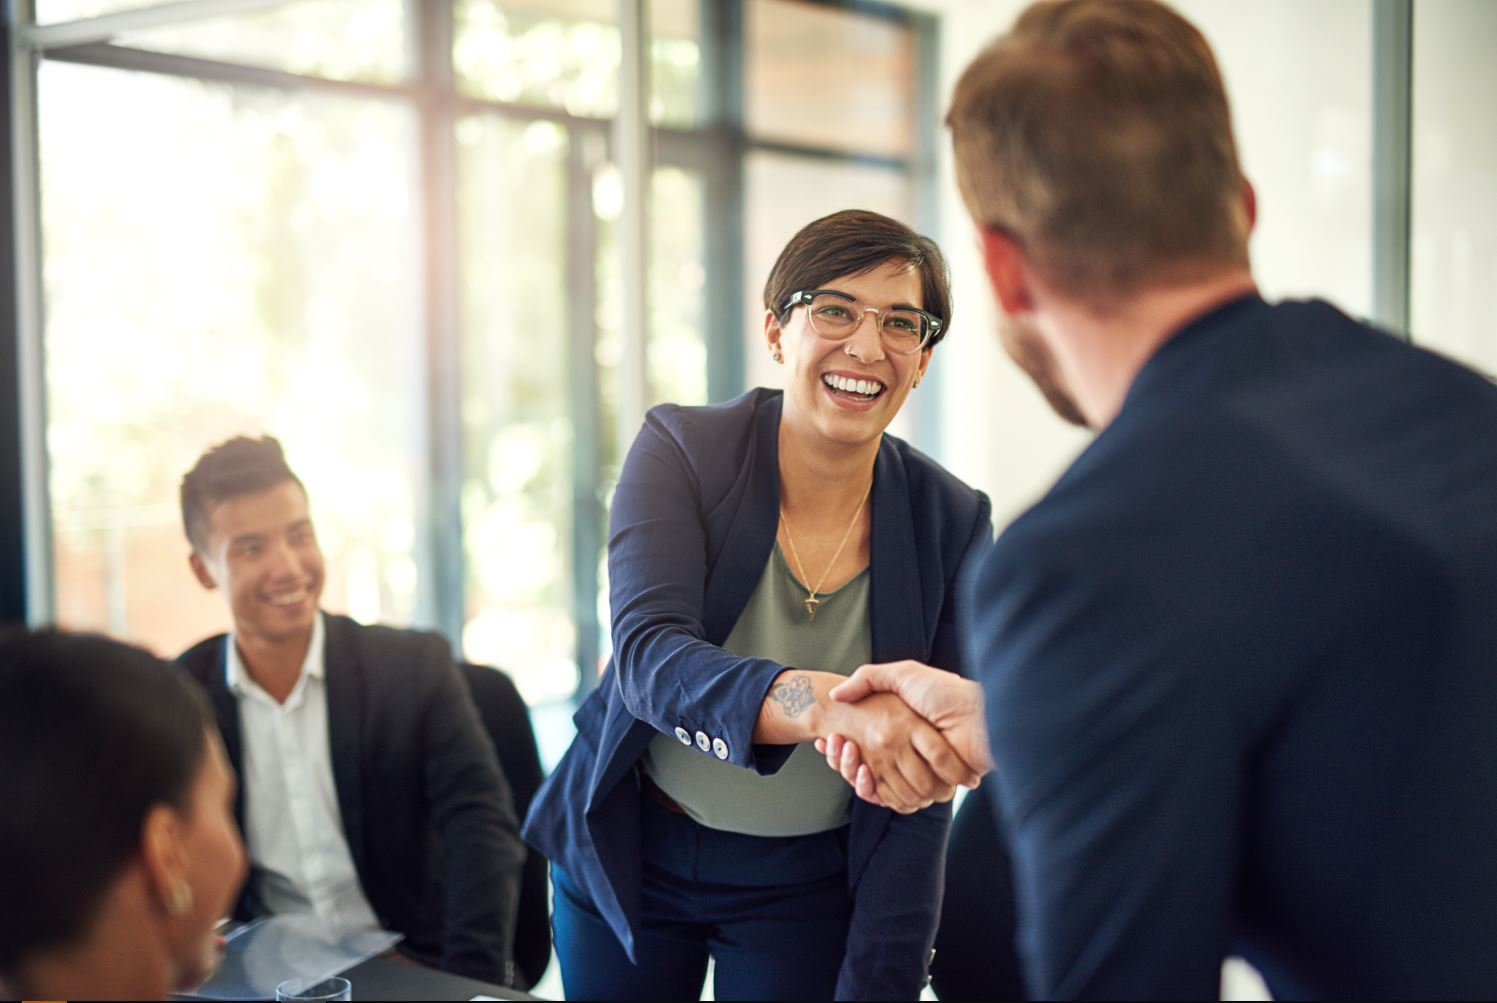 Business woman shaking hands with a man at a meeting.